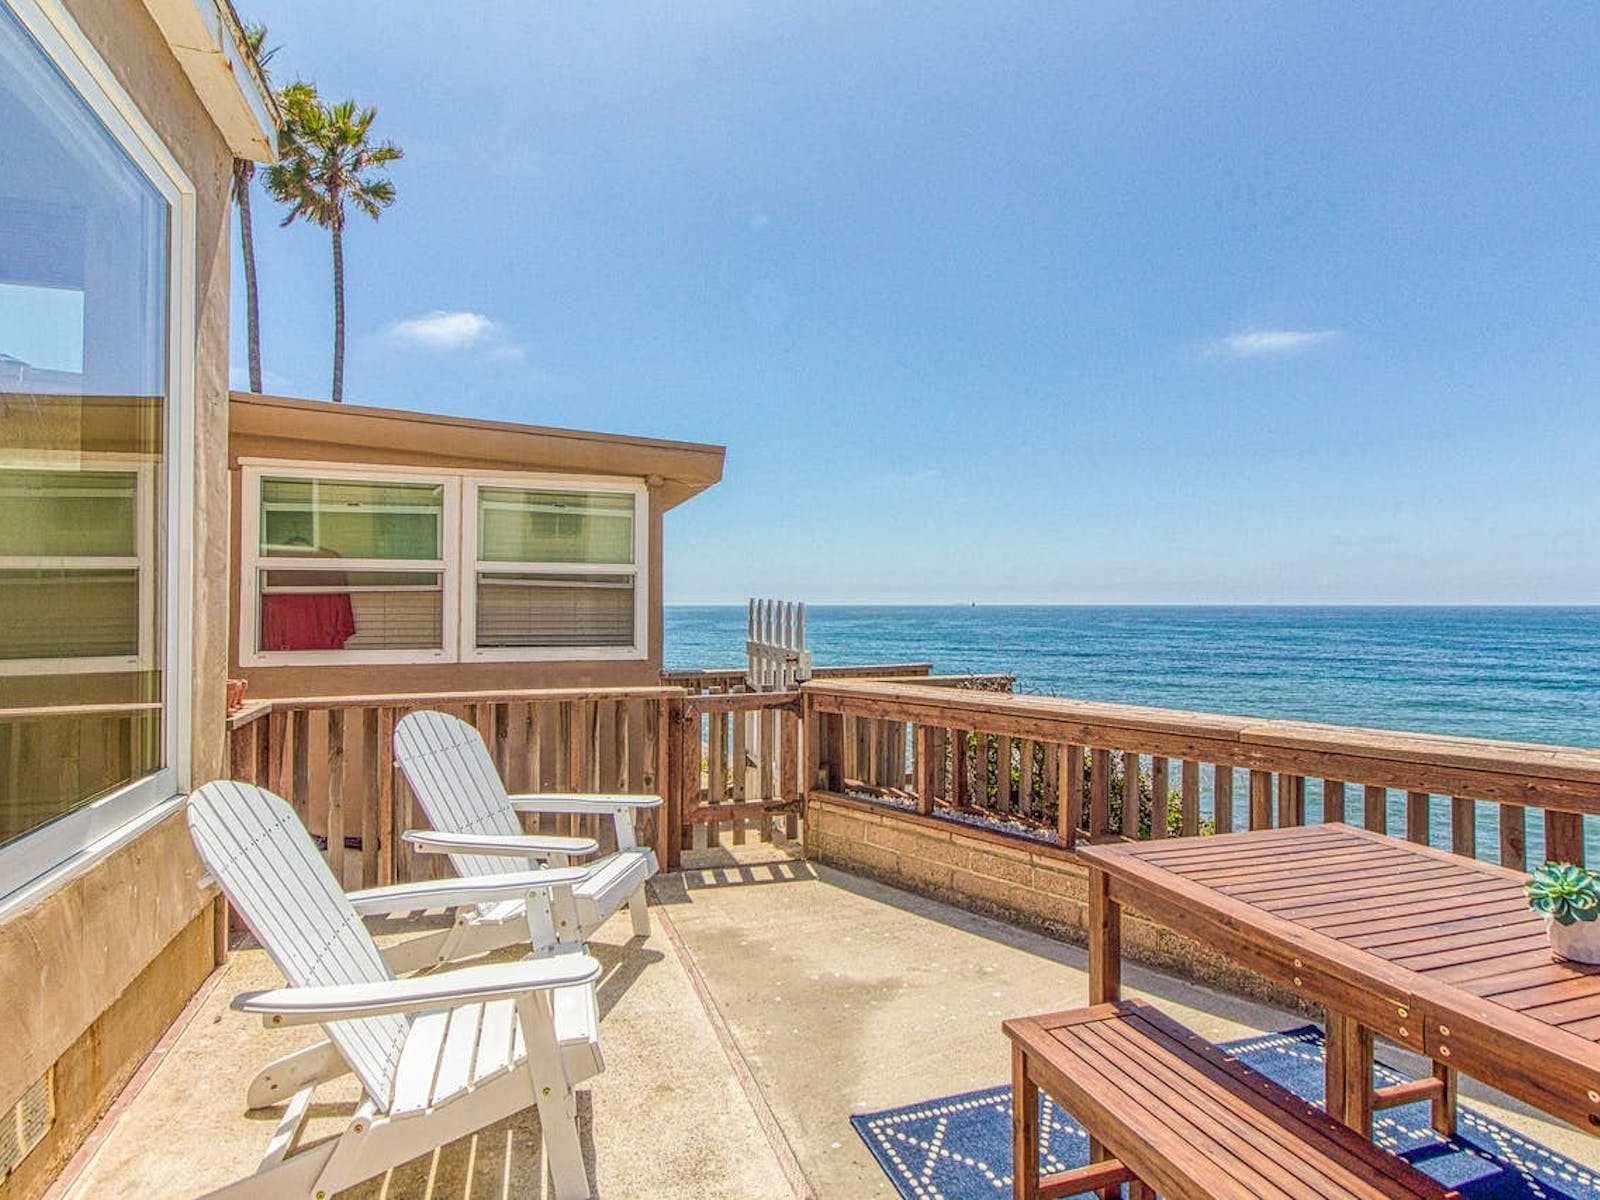 oceanfront San Diego, CA vacation home with large deck overlooking ocean